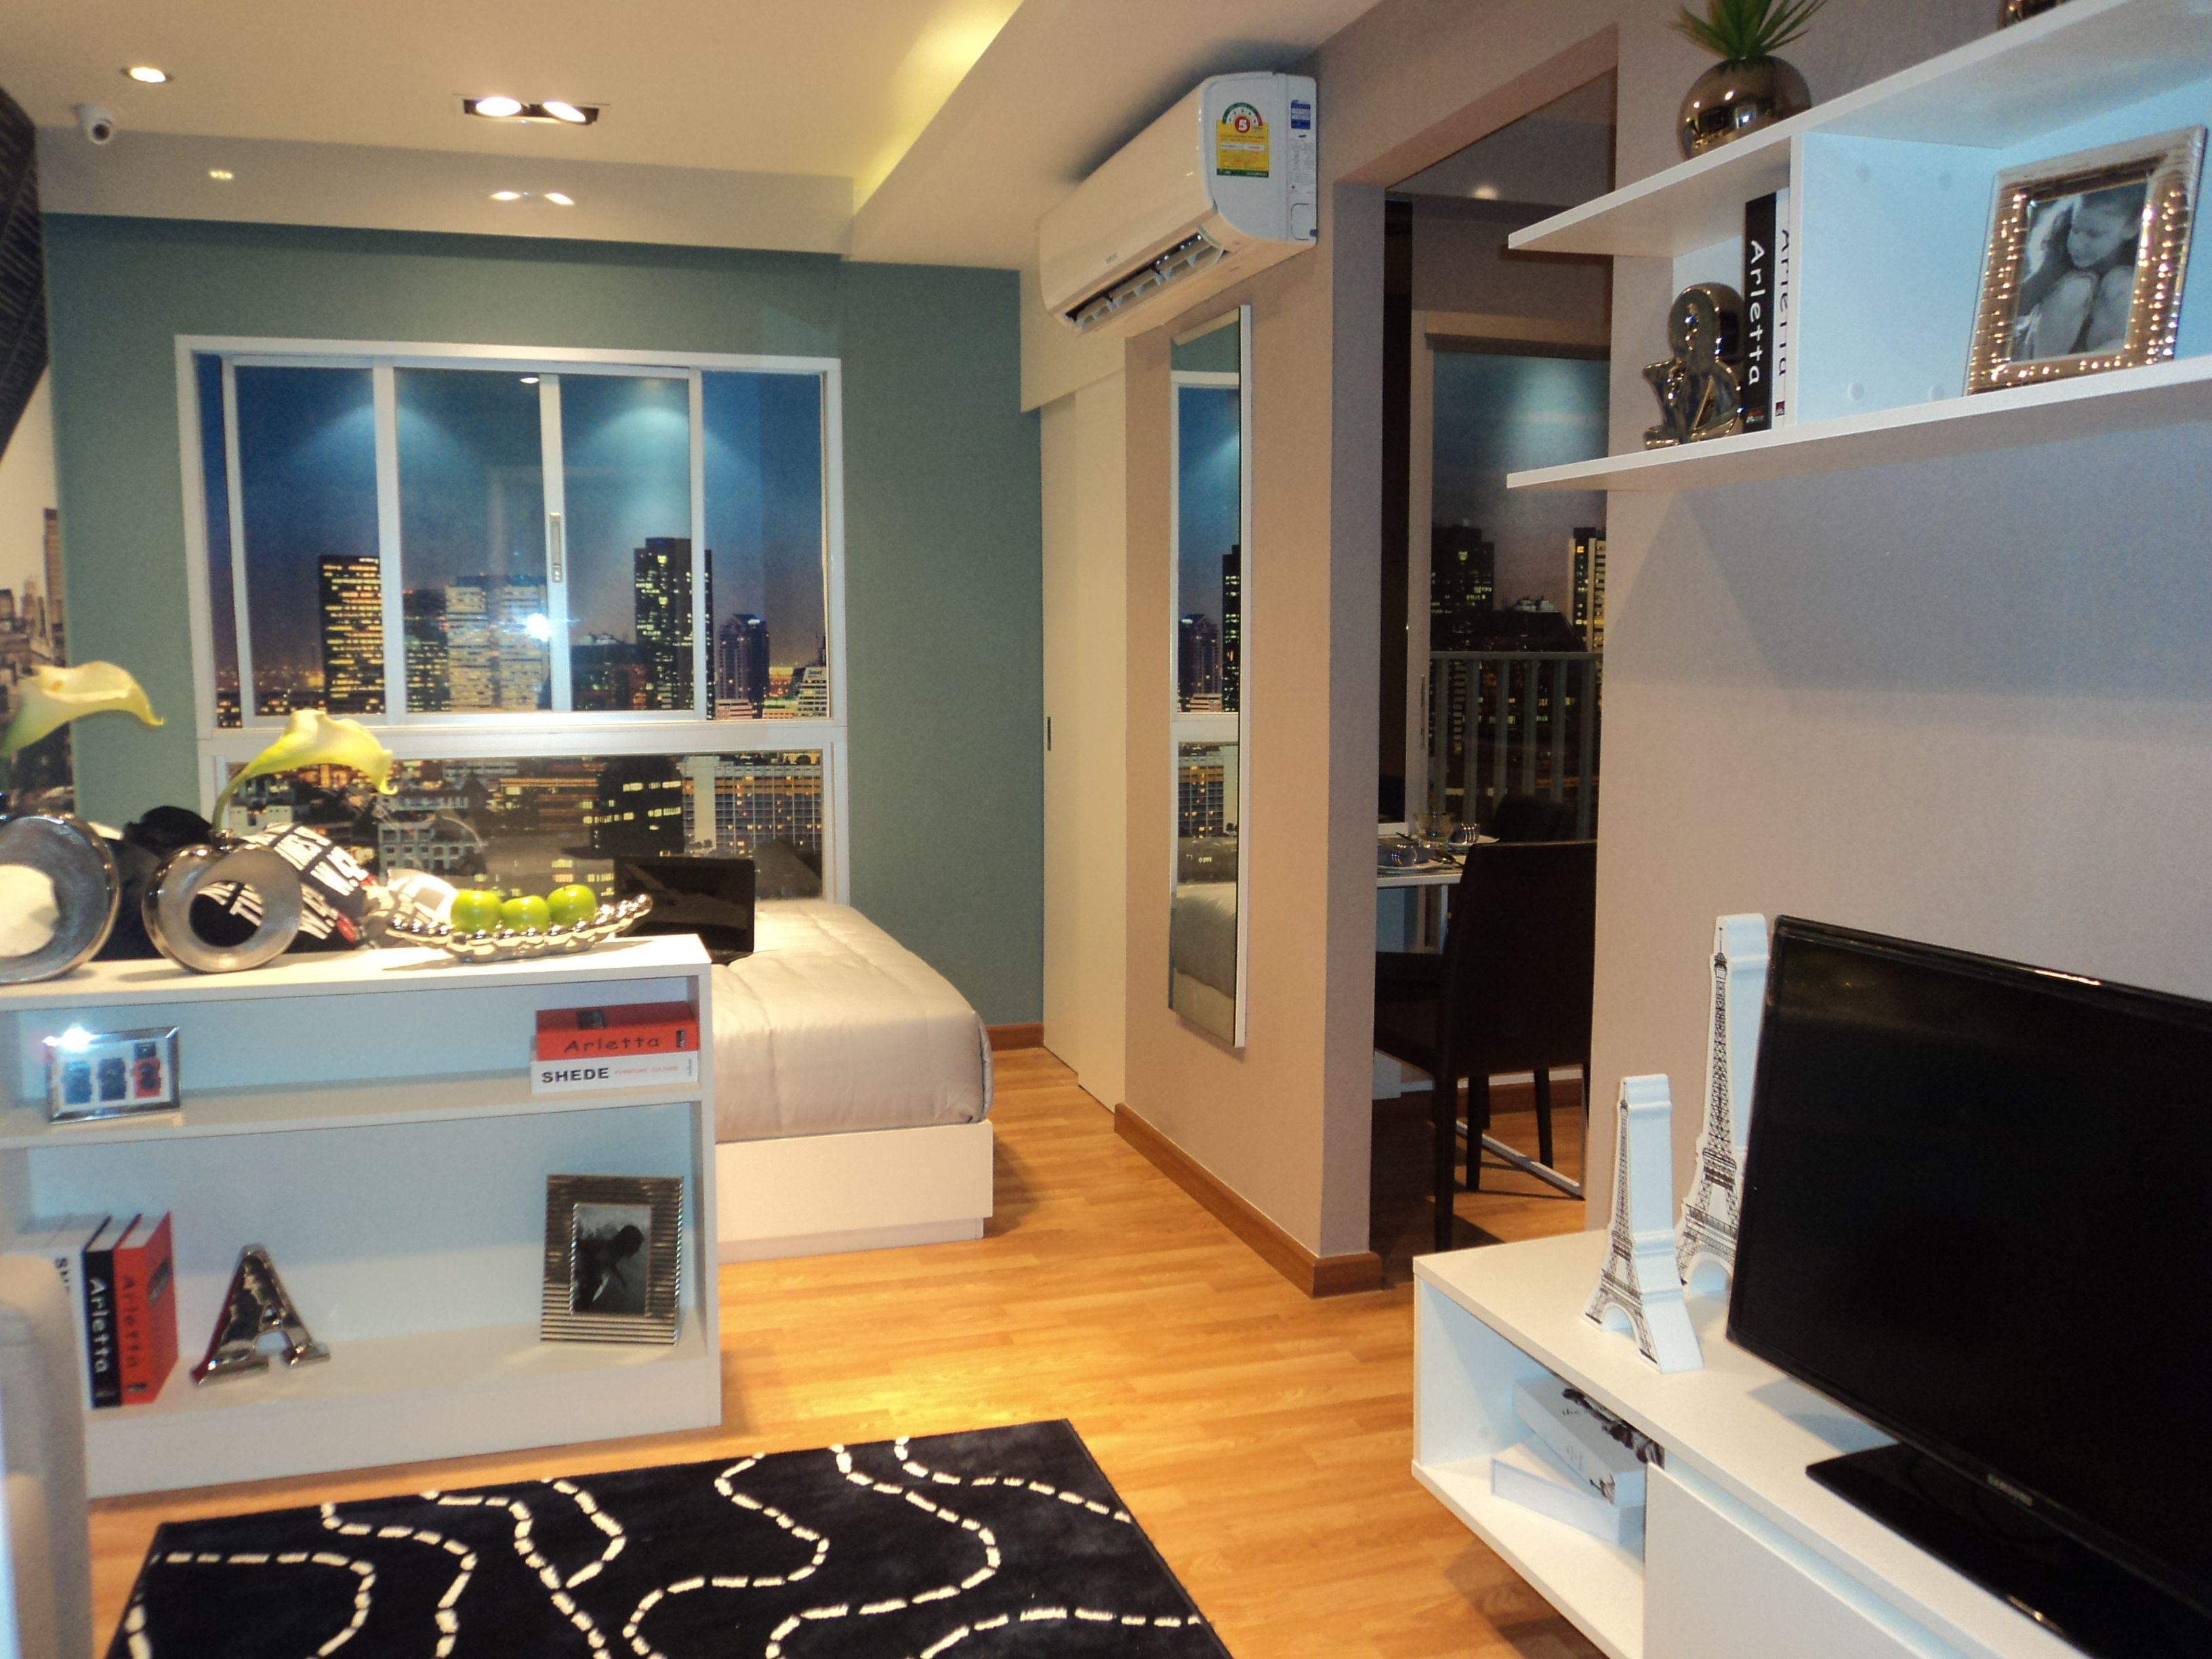 Studio Type 236 Sqm Small CondoApartment